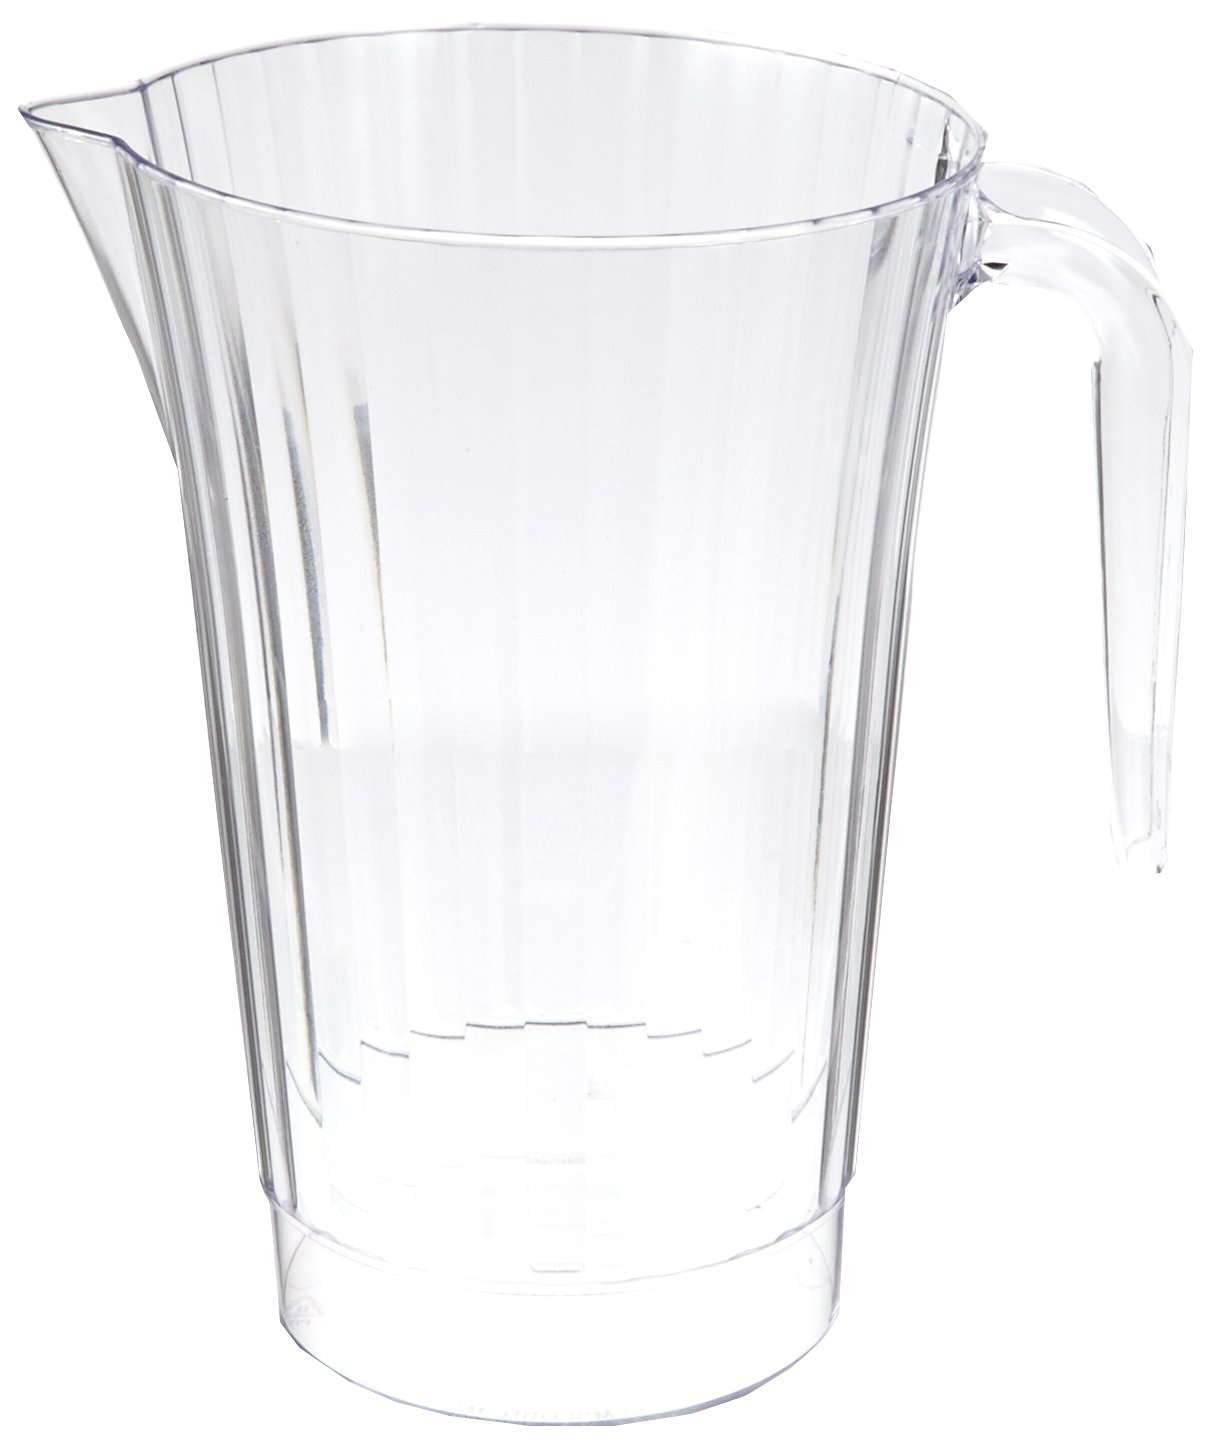 Comet Clear 50oz Classic Crystal Plastic Pitcher CCPIT50